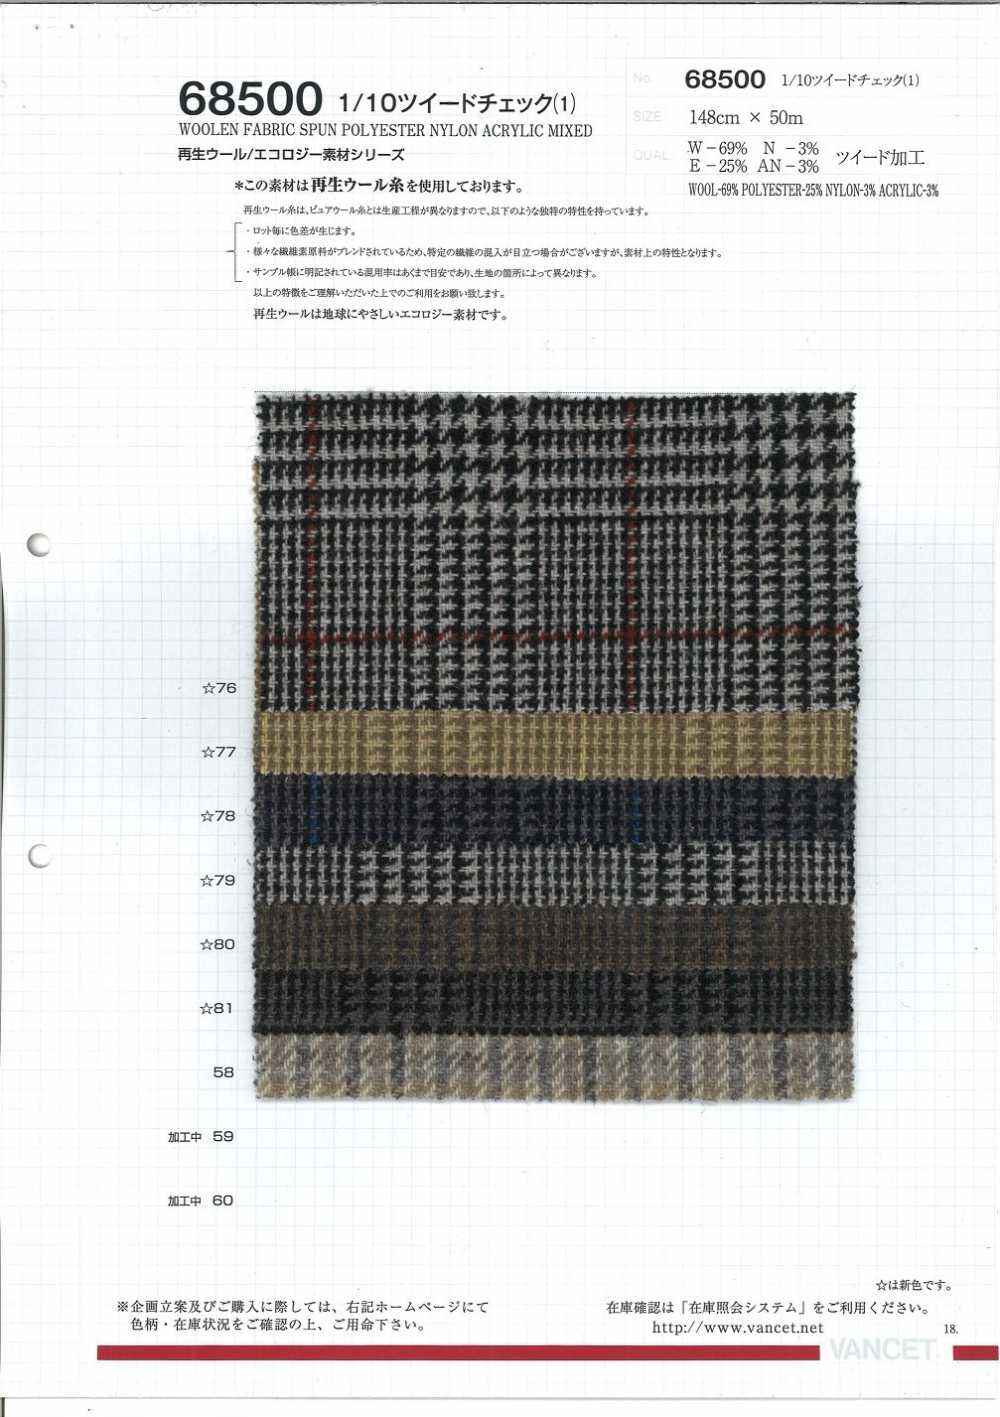 68500-1 1/10 Tweed Check [using Recycled Wool Thread][Textile / Fabric] VANCET